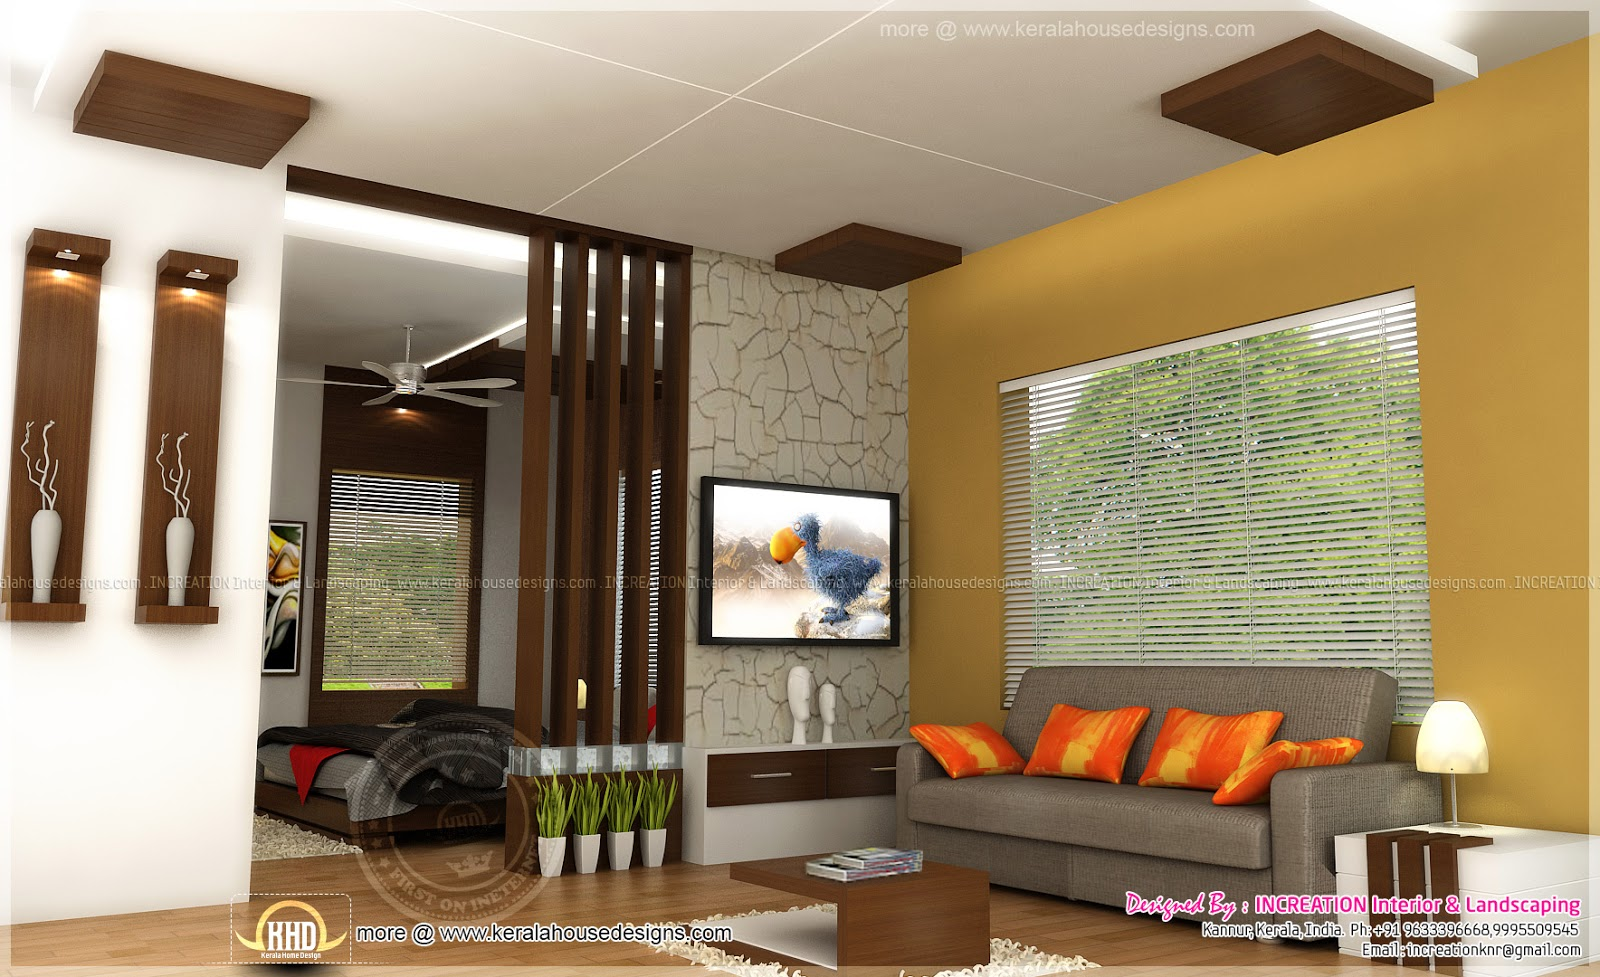 Interior designs from kannur kerala kerala home design for Kerala home interior design ideas